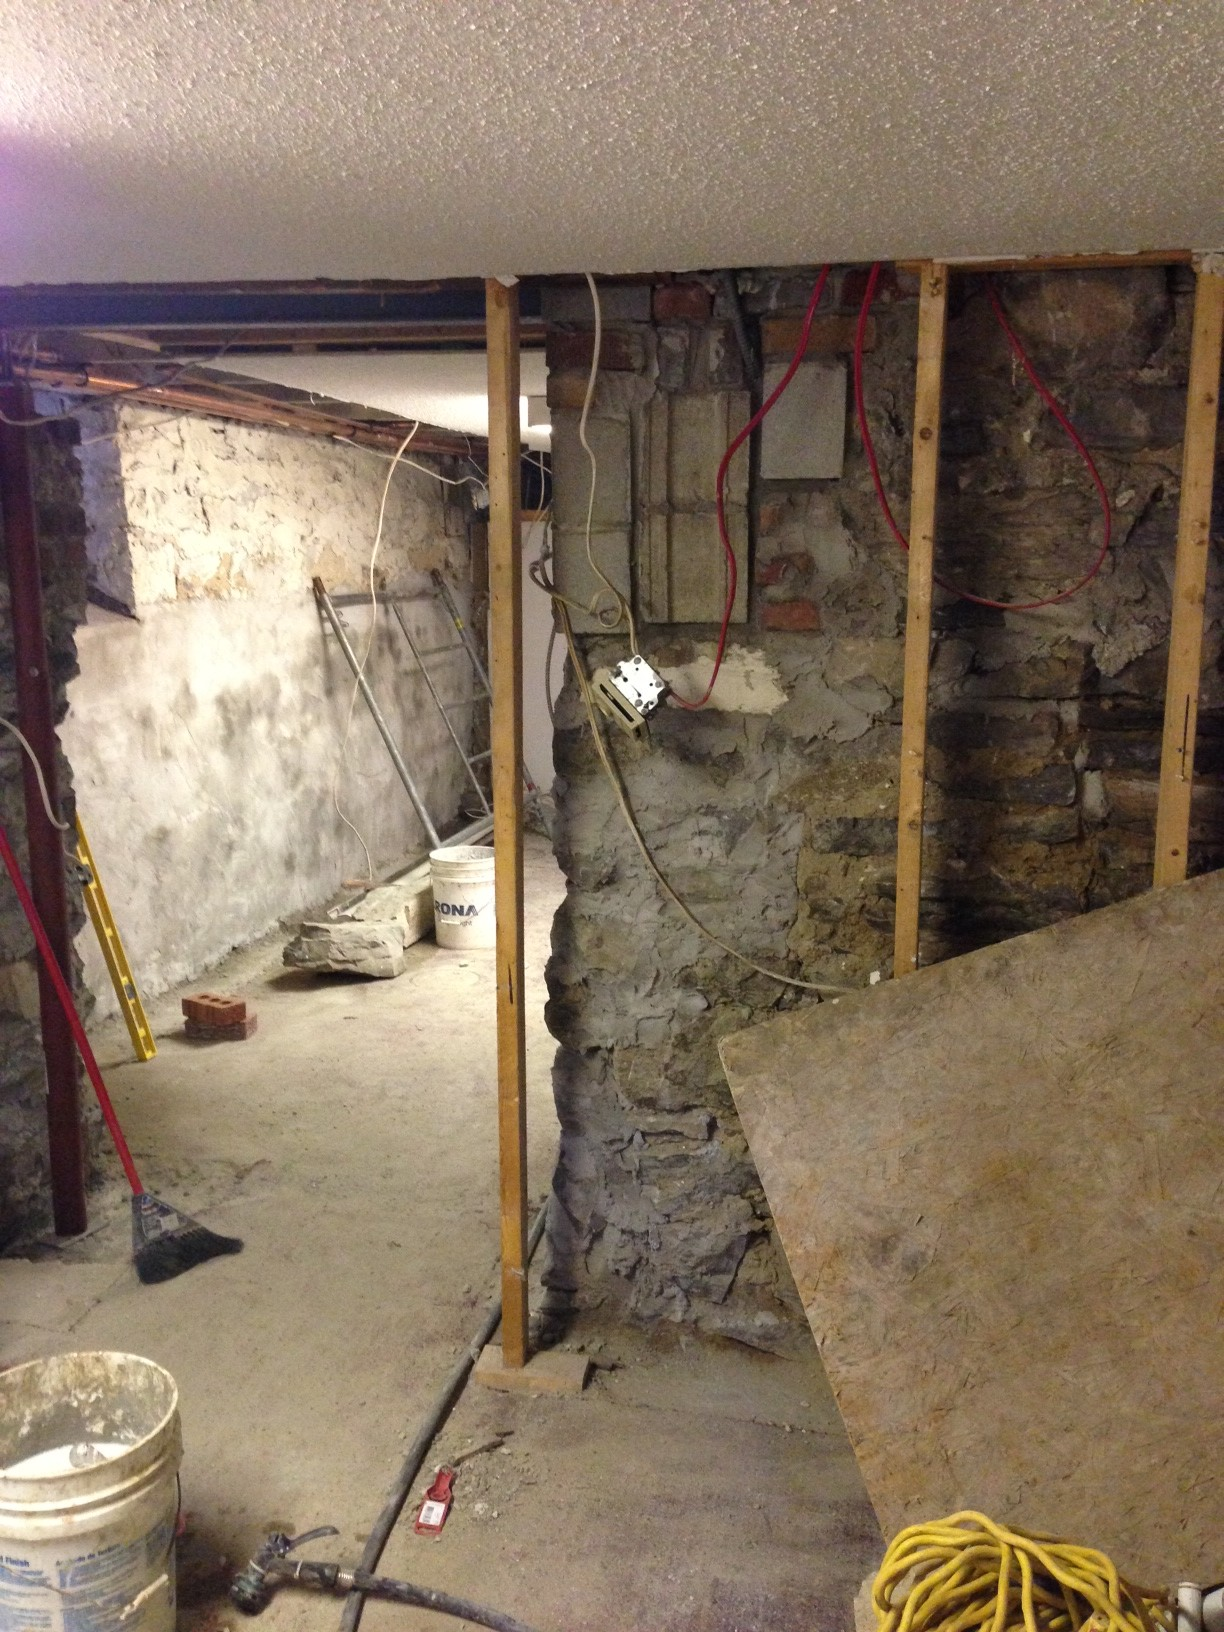 Property Management Software Landlord And Basement Electrical Wiring Video 3 Months 33000 Later About 700 Views On This The Apartment From Hell Has Been Transformed Check Out Gallery Of Before Midway